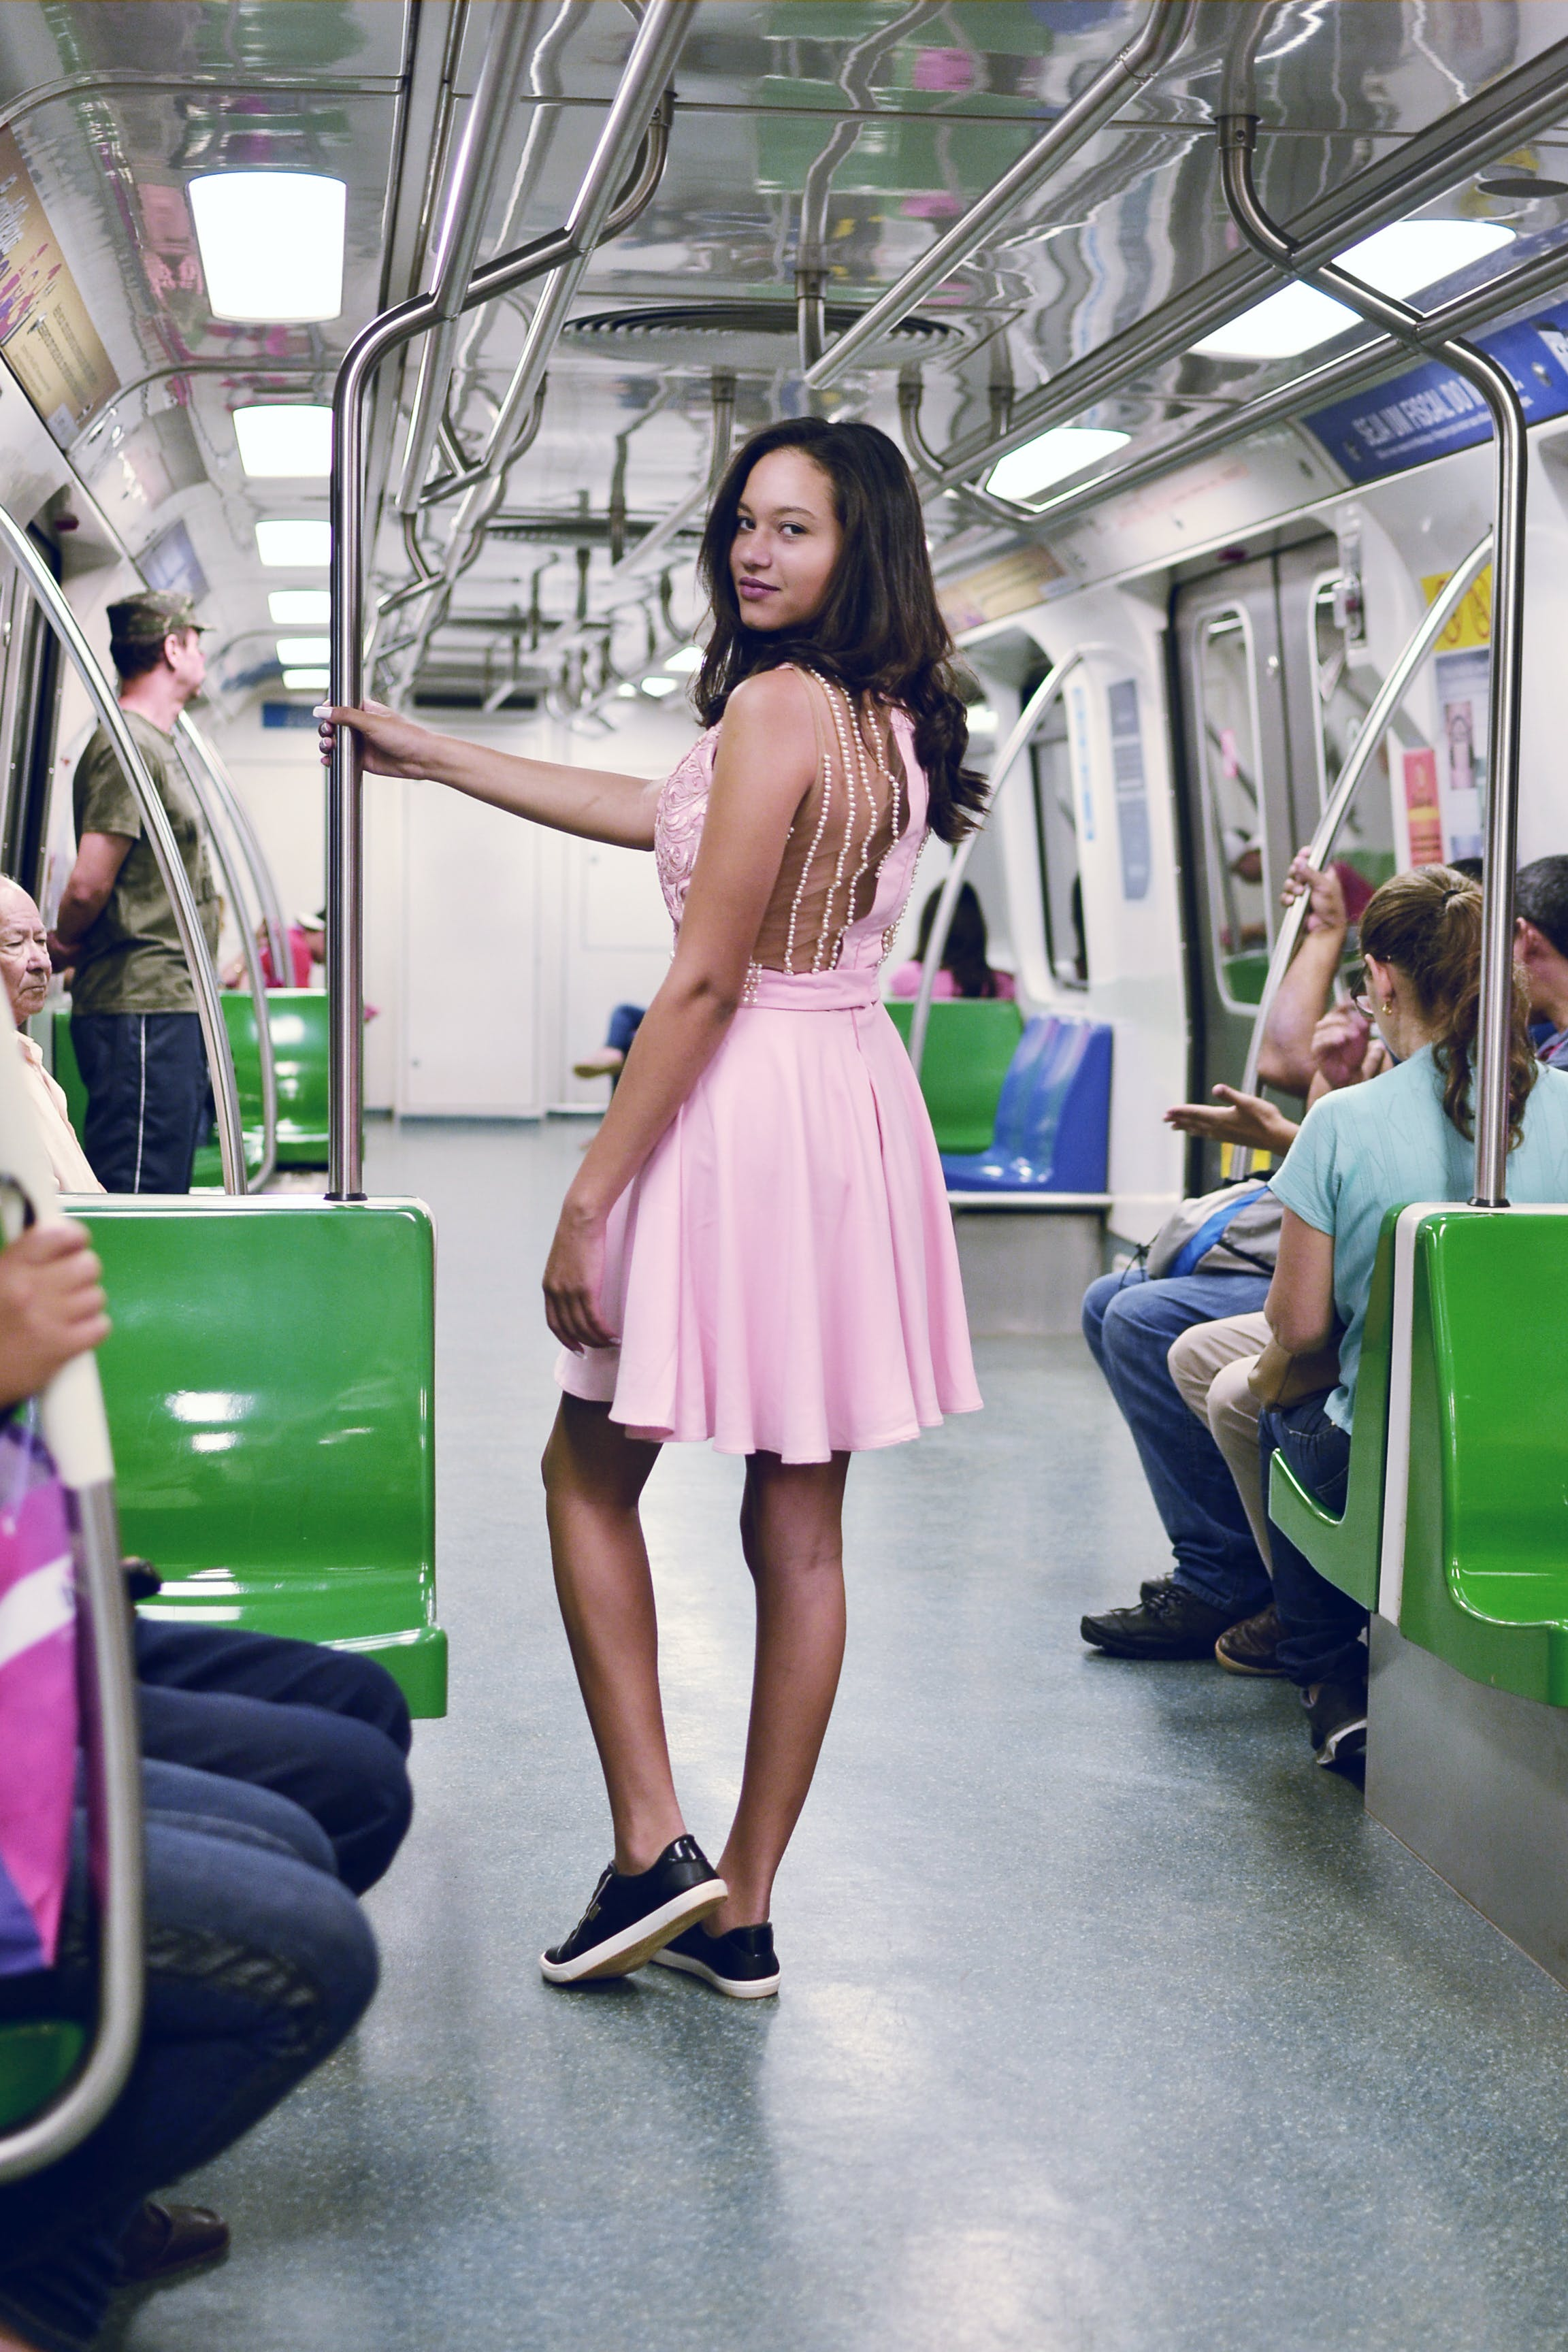 Woman Wearing Pink Sleeveless Dress Inside the Train